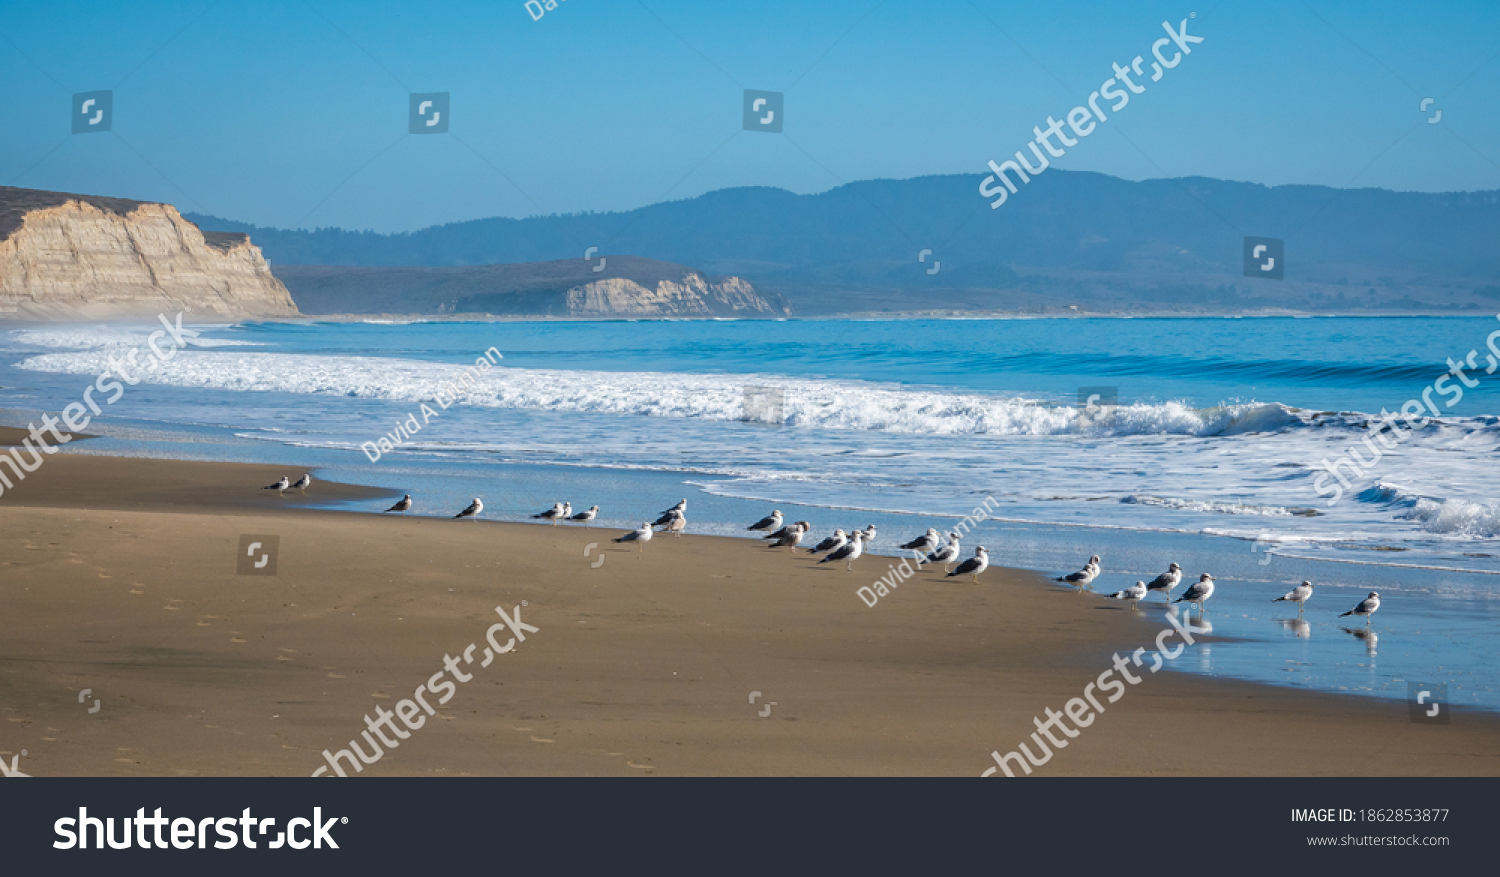 A flock of seagulls stand on the Pacific Coast shoreline of Drakes Beach, at the Point Reyes National Seashore, in Northern California.